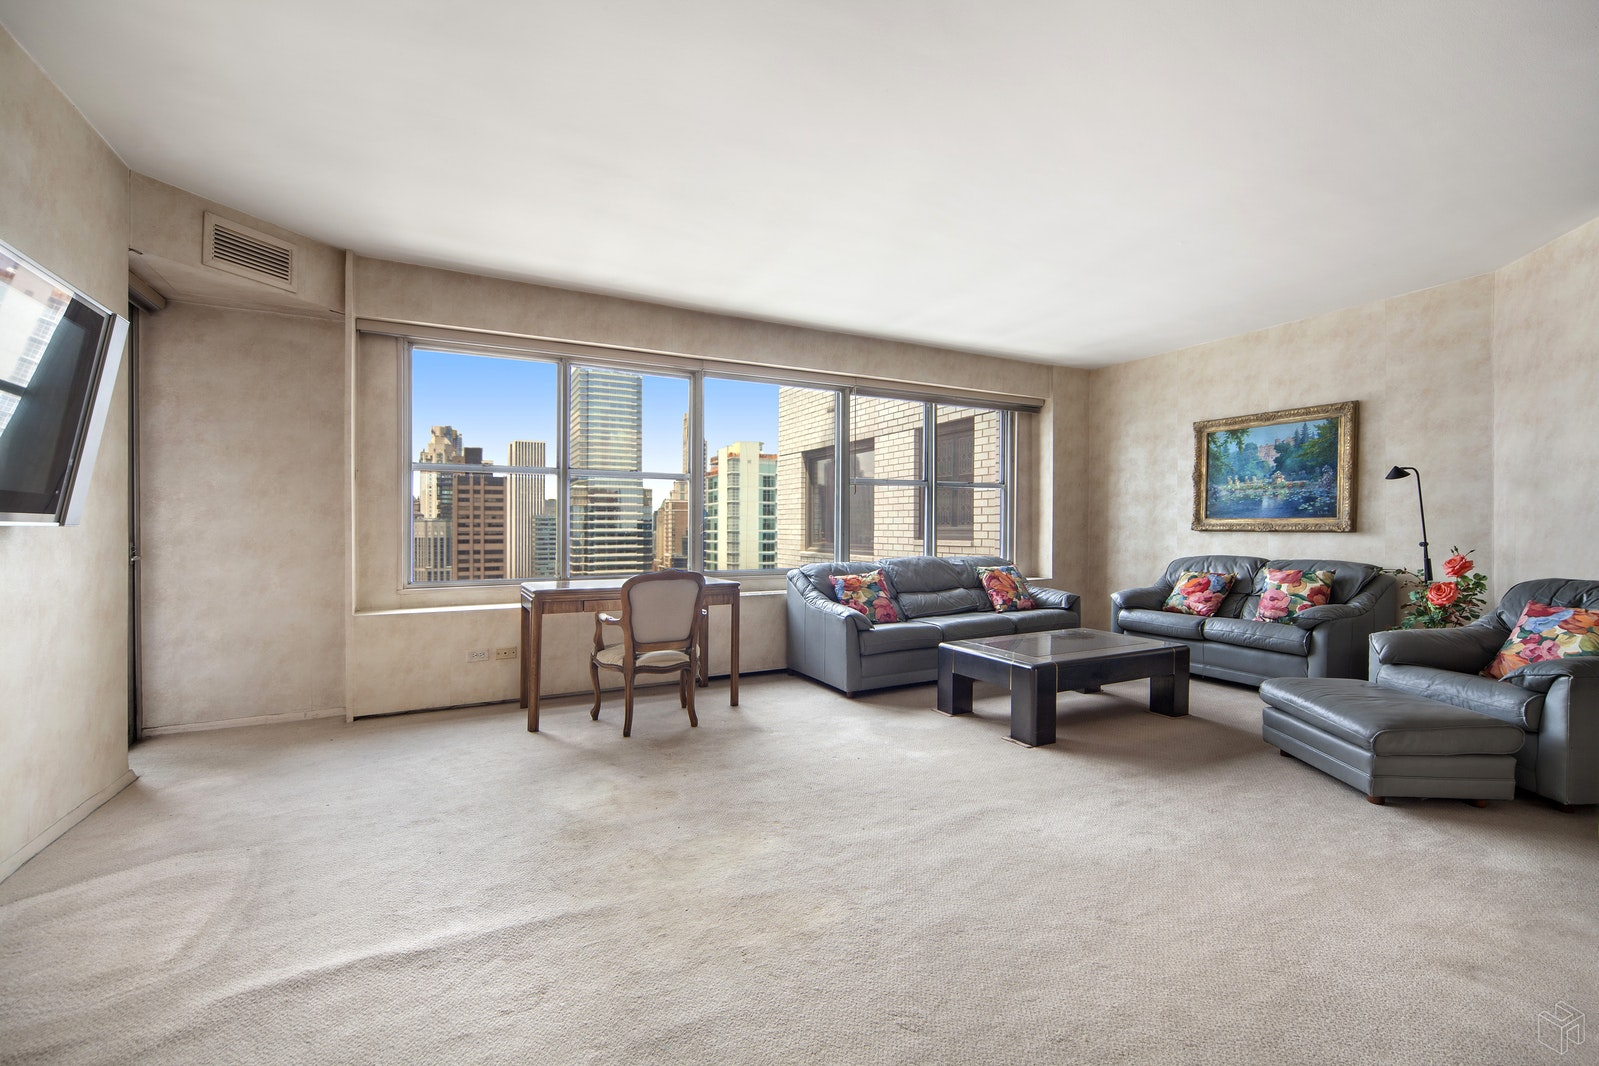 303 East 57th Street, Midtown East, NYC, 10022, $300,000, Sold Property, Halstead Real Estate, Photo 4